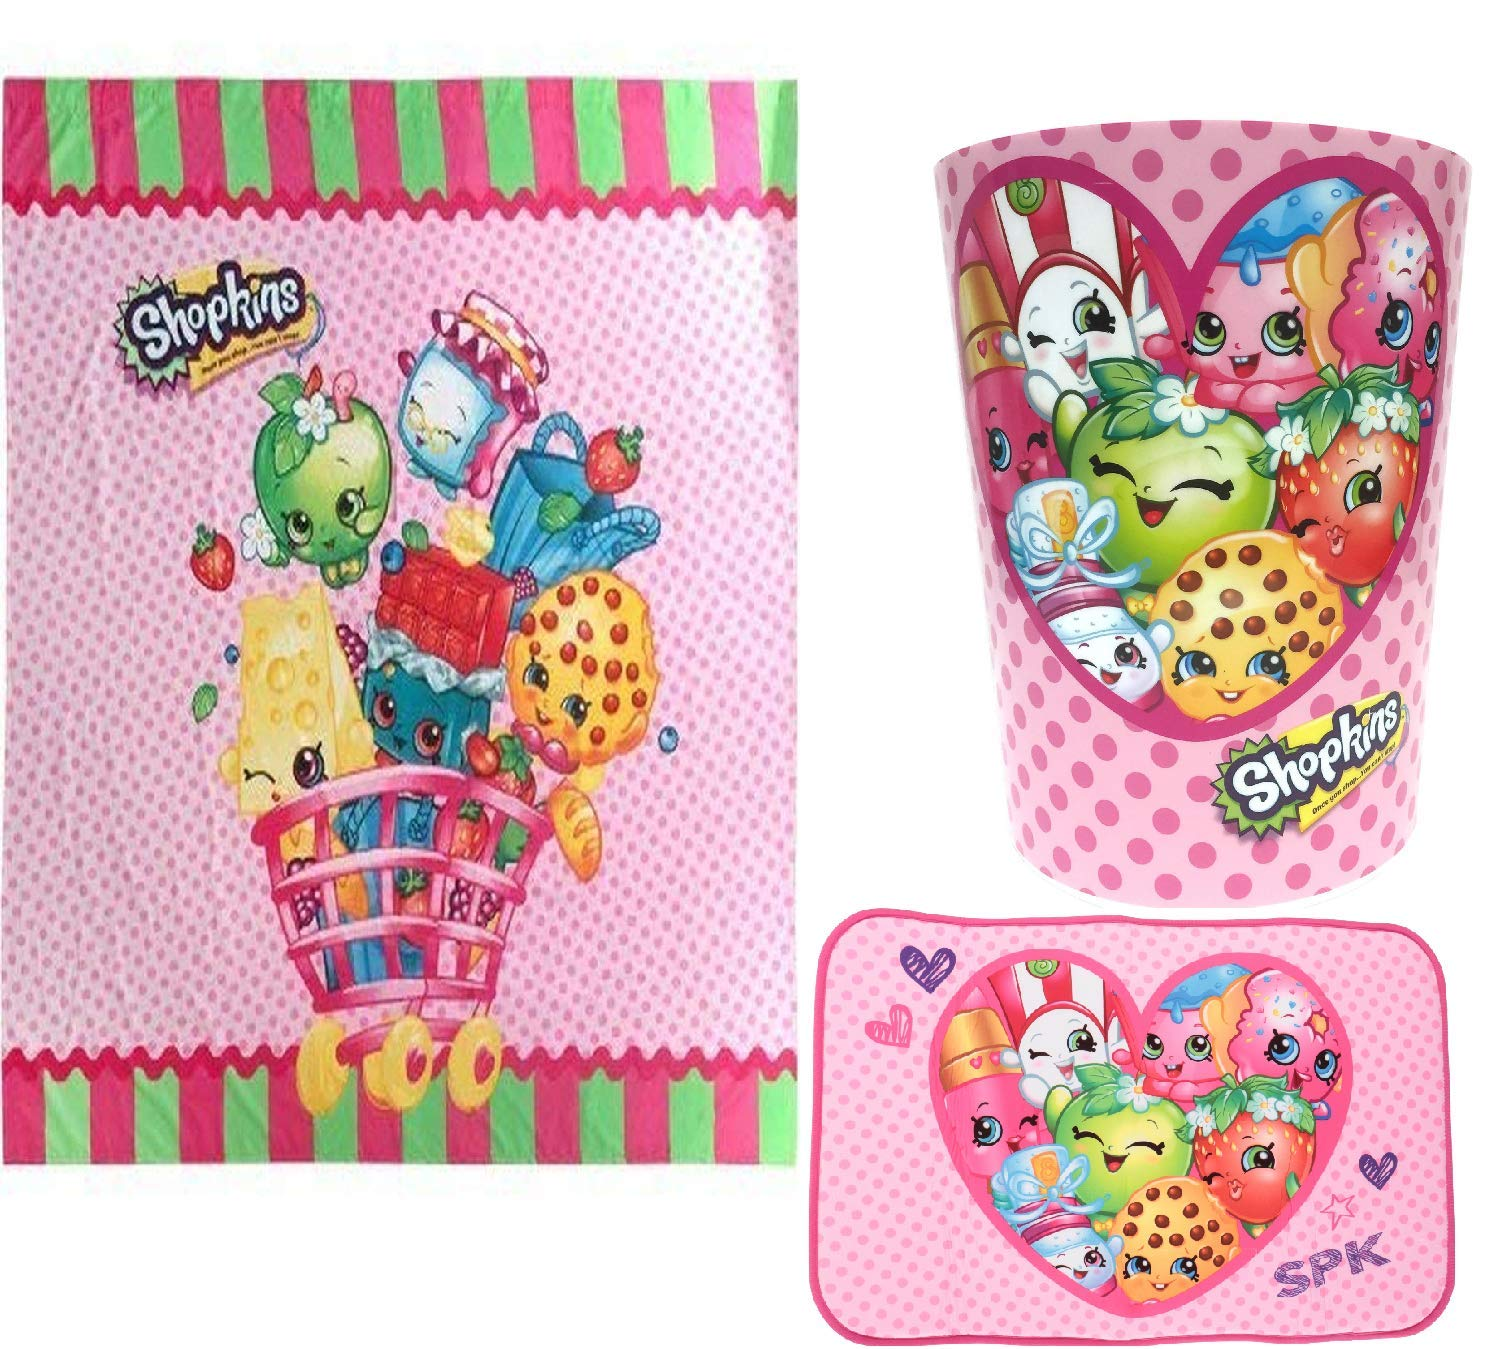 Shopkins Bathroom Accessories Including Shower Curtain, Wastebasket and Bath Mat